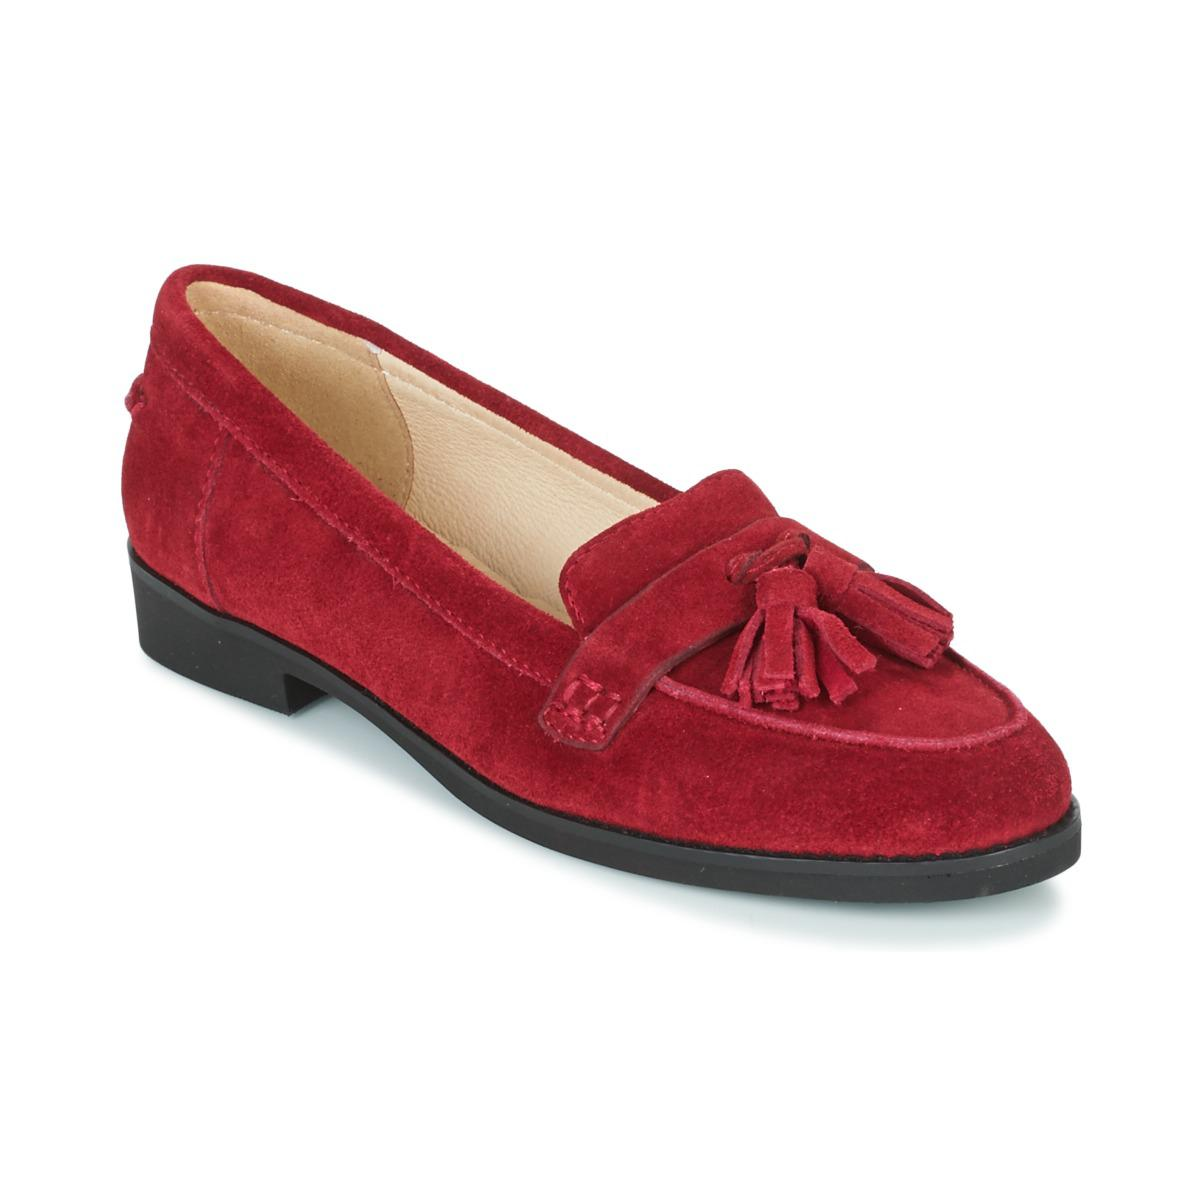 reputable site 0a2e2 7bc30 hush-puppies-red-Amya-Womens-Loafers-Casual-Shoes-In-Red.jpeg